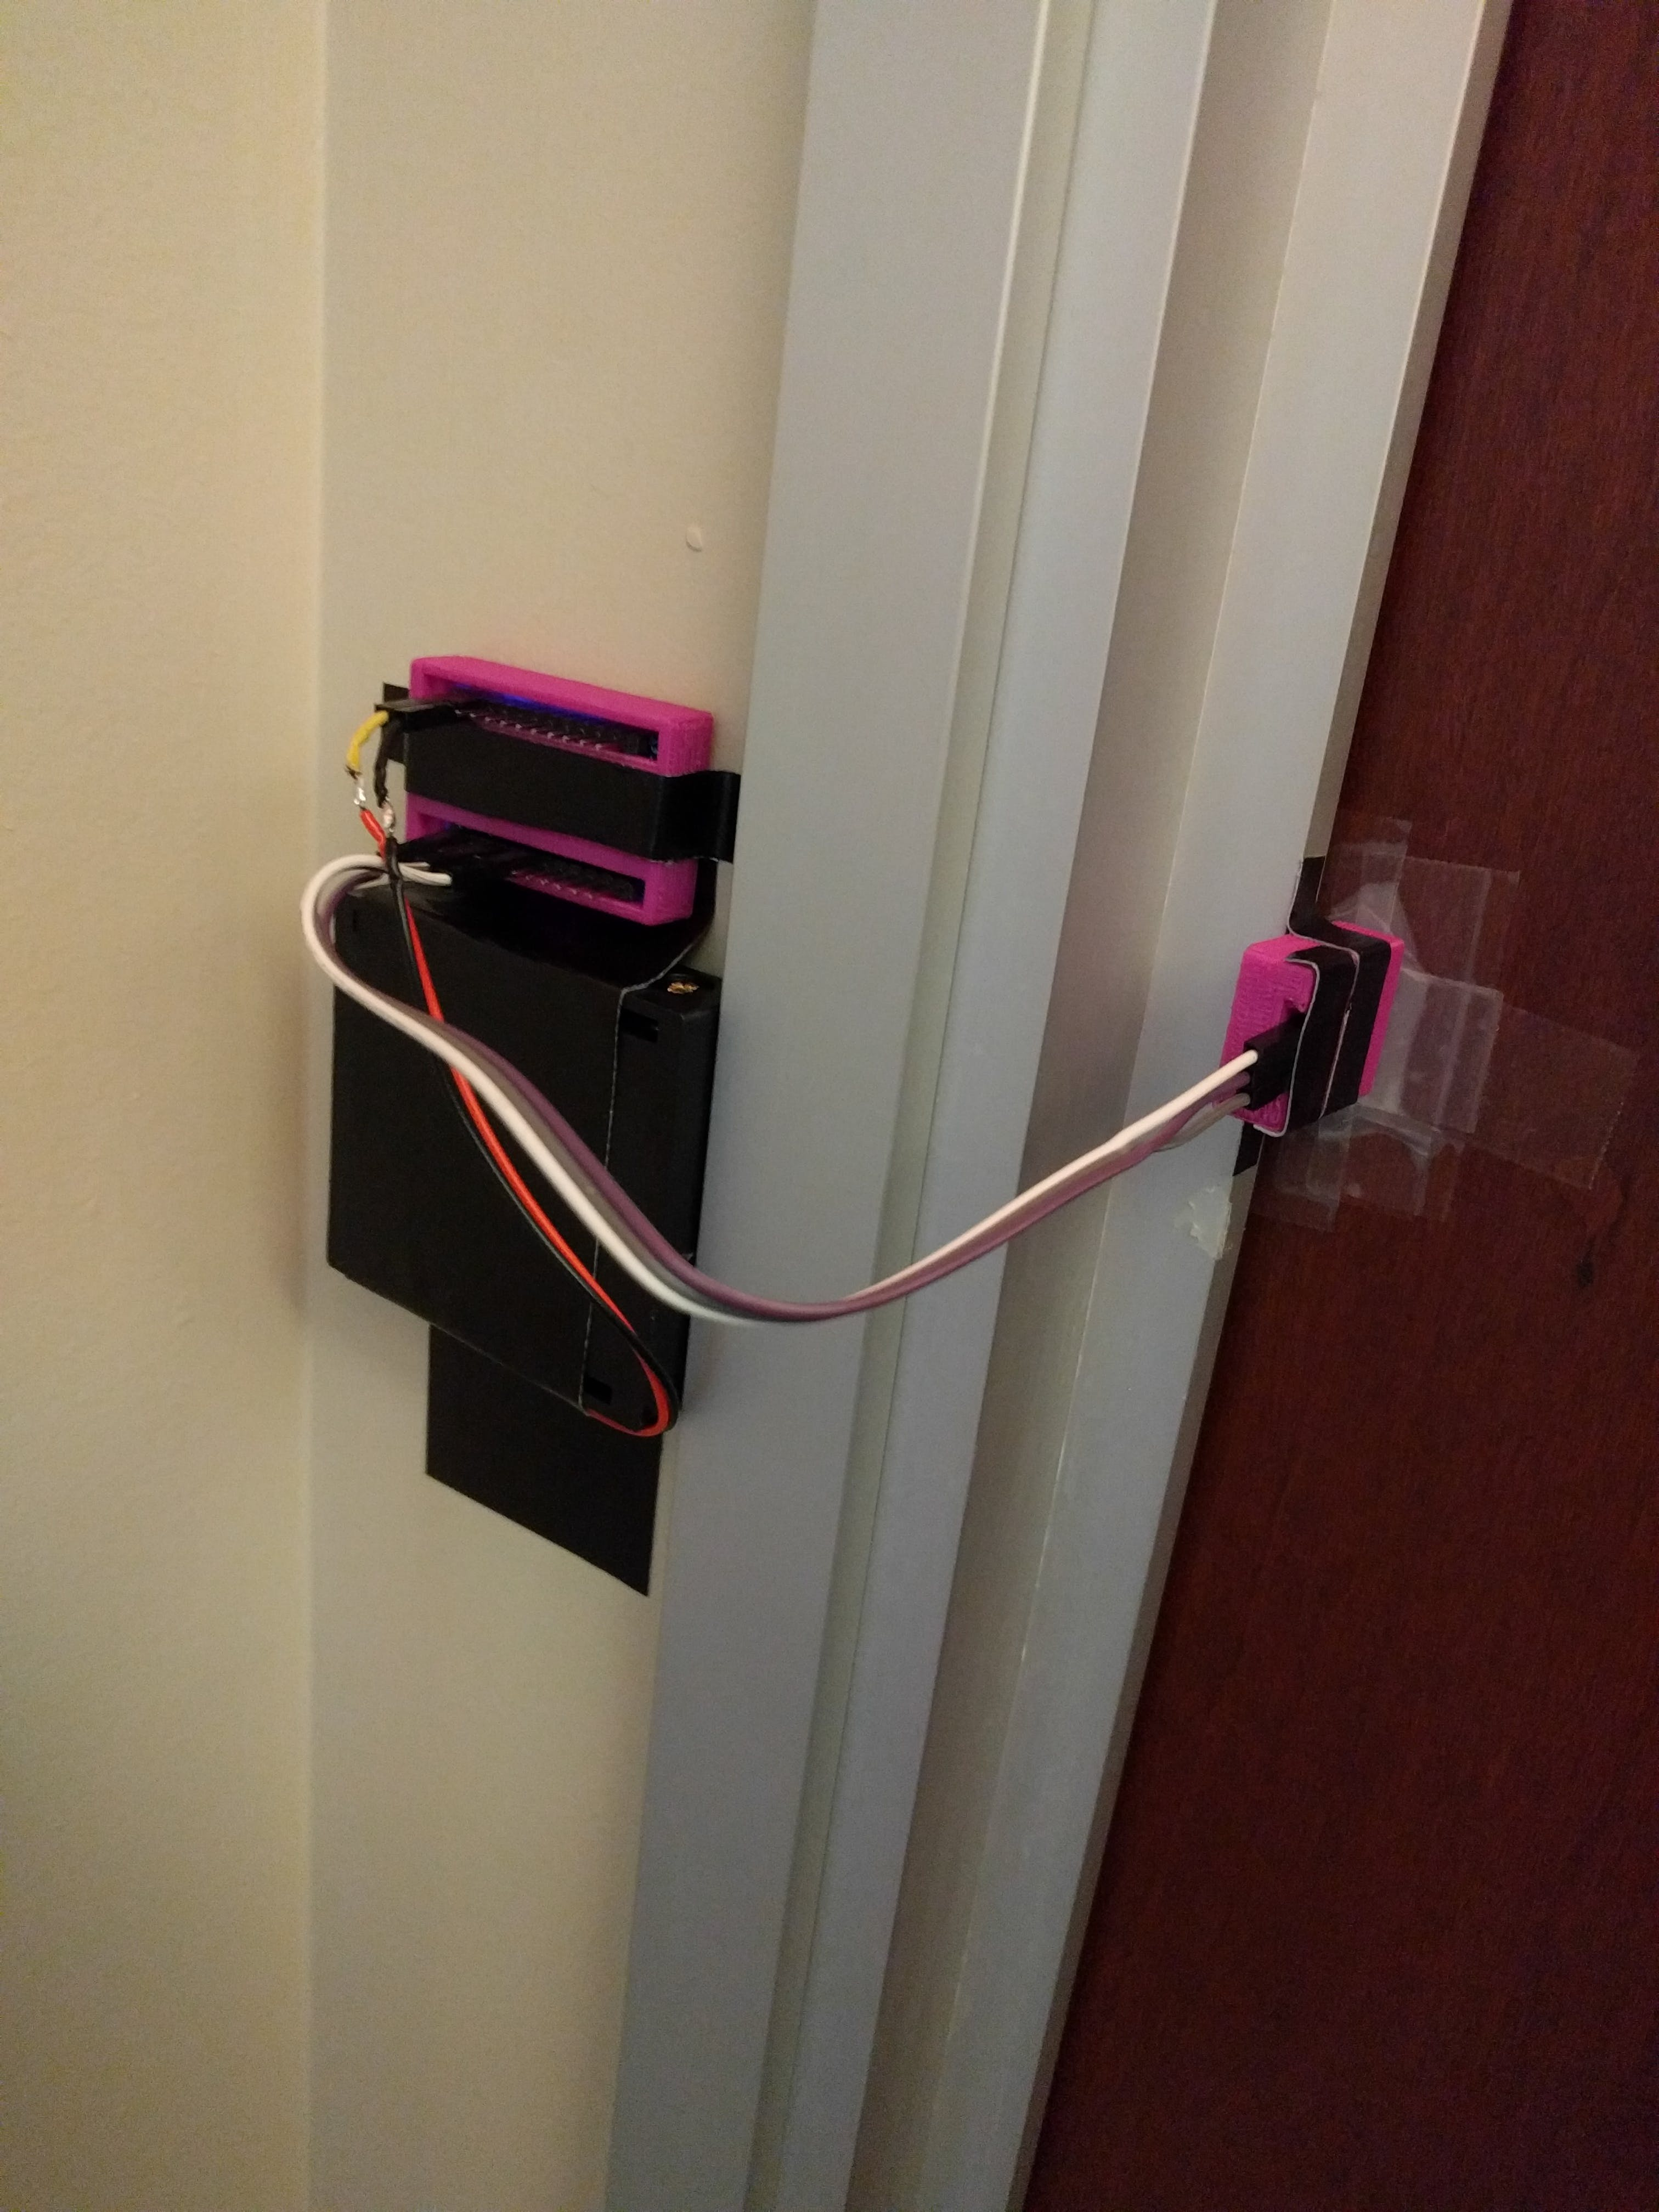 Bathroom detector with 3D printed cases and battery pack